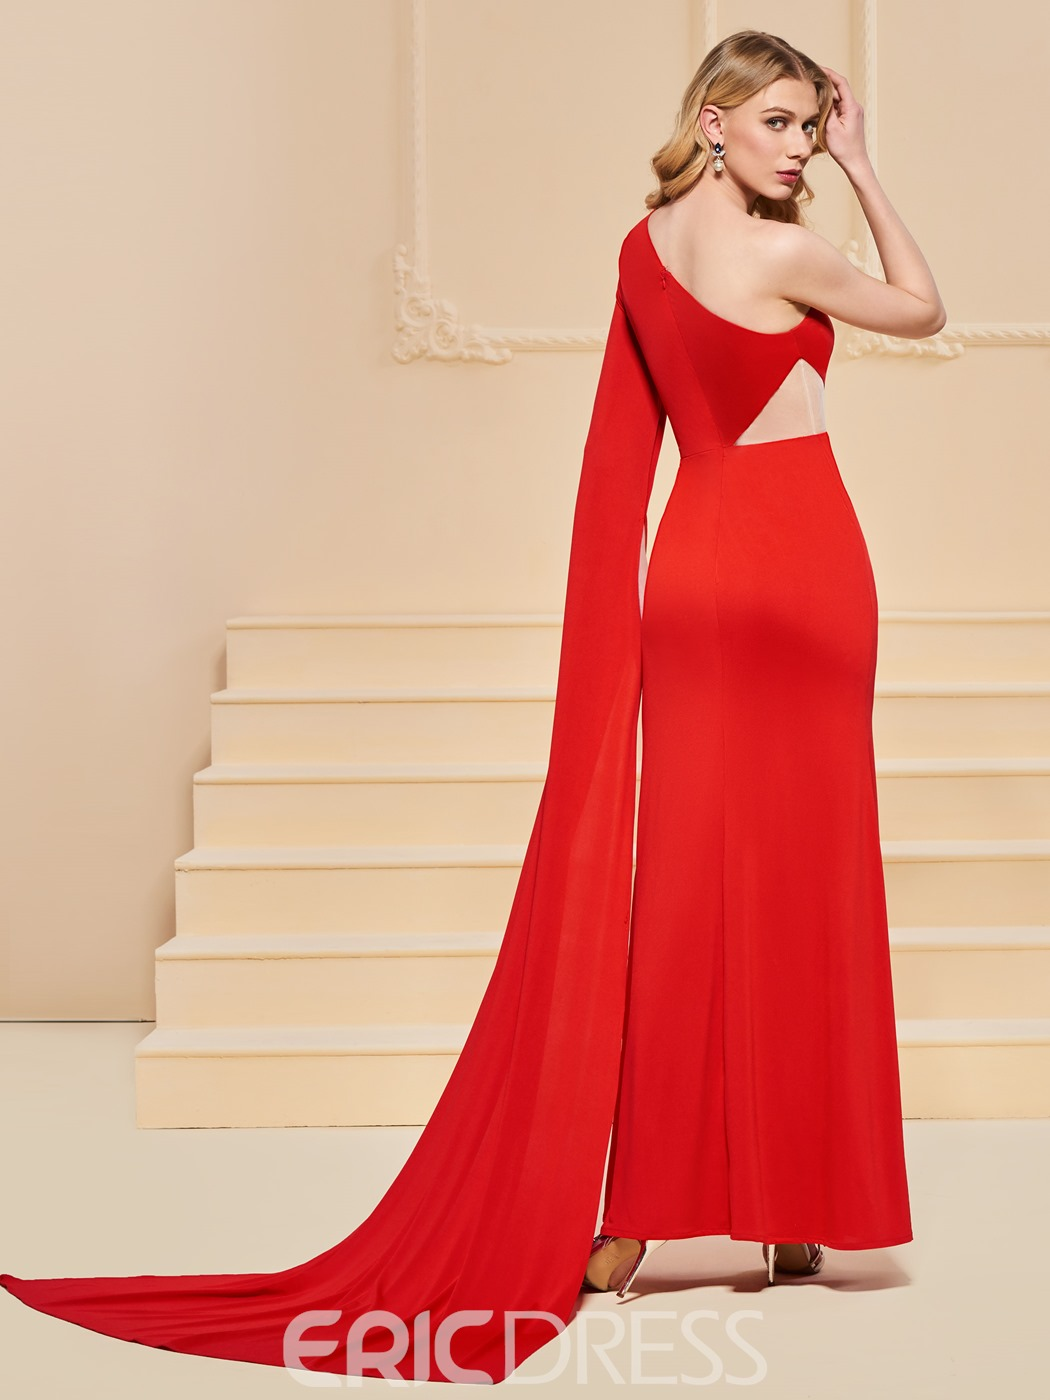 Ericdress Sheath One Shoulder Mermaid Red Evening Dress